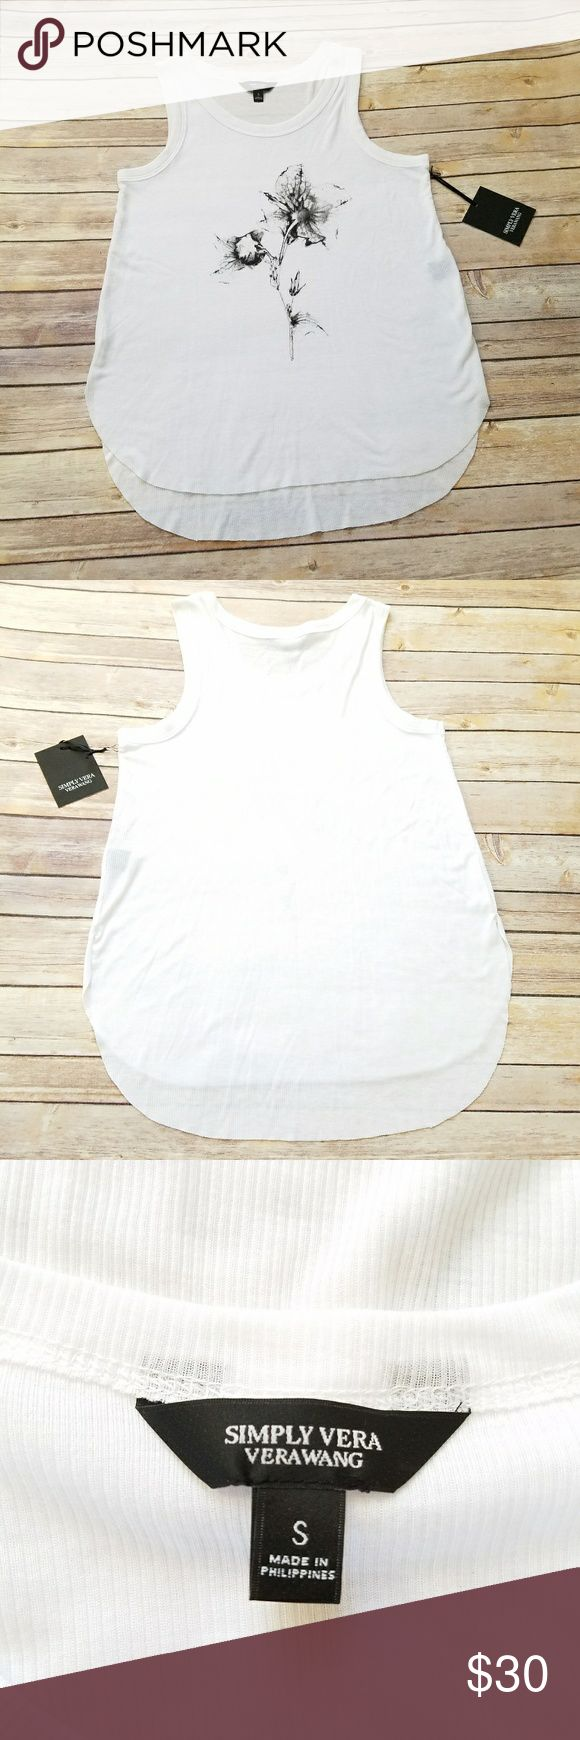 NWT Simply Vera Wang white ribbed tank top Size Small. - bust 17.5 in underarm to underarm - length 23.5 in in front, 26 in in back Simply Vera Vera Wang white ribbed tank top with a flower graphic on the front. New with tags! Simply Vera Vera Wang Tops Tank Tops